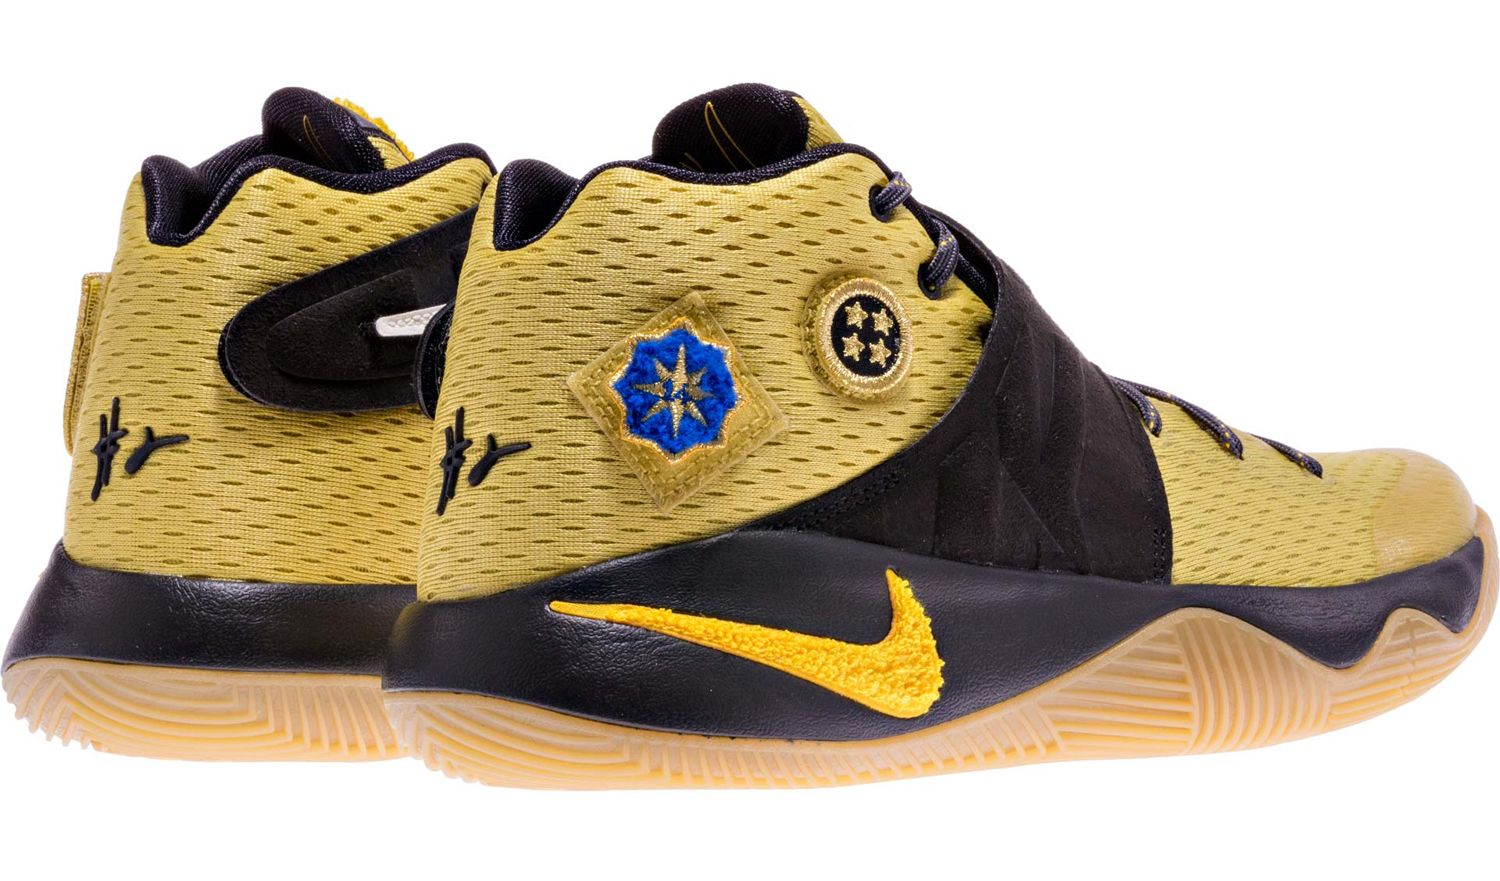 Kyrie Irving\u0027s Not an All-Star, But His All-Star Nike Shoe Just